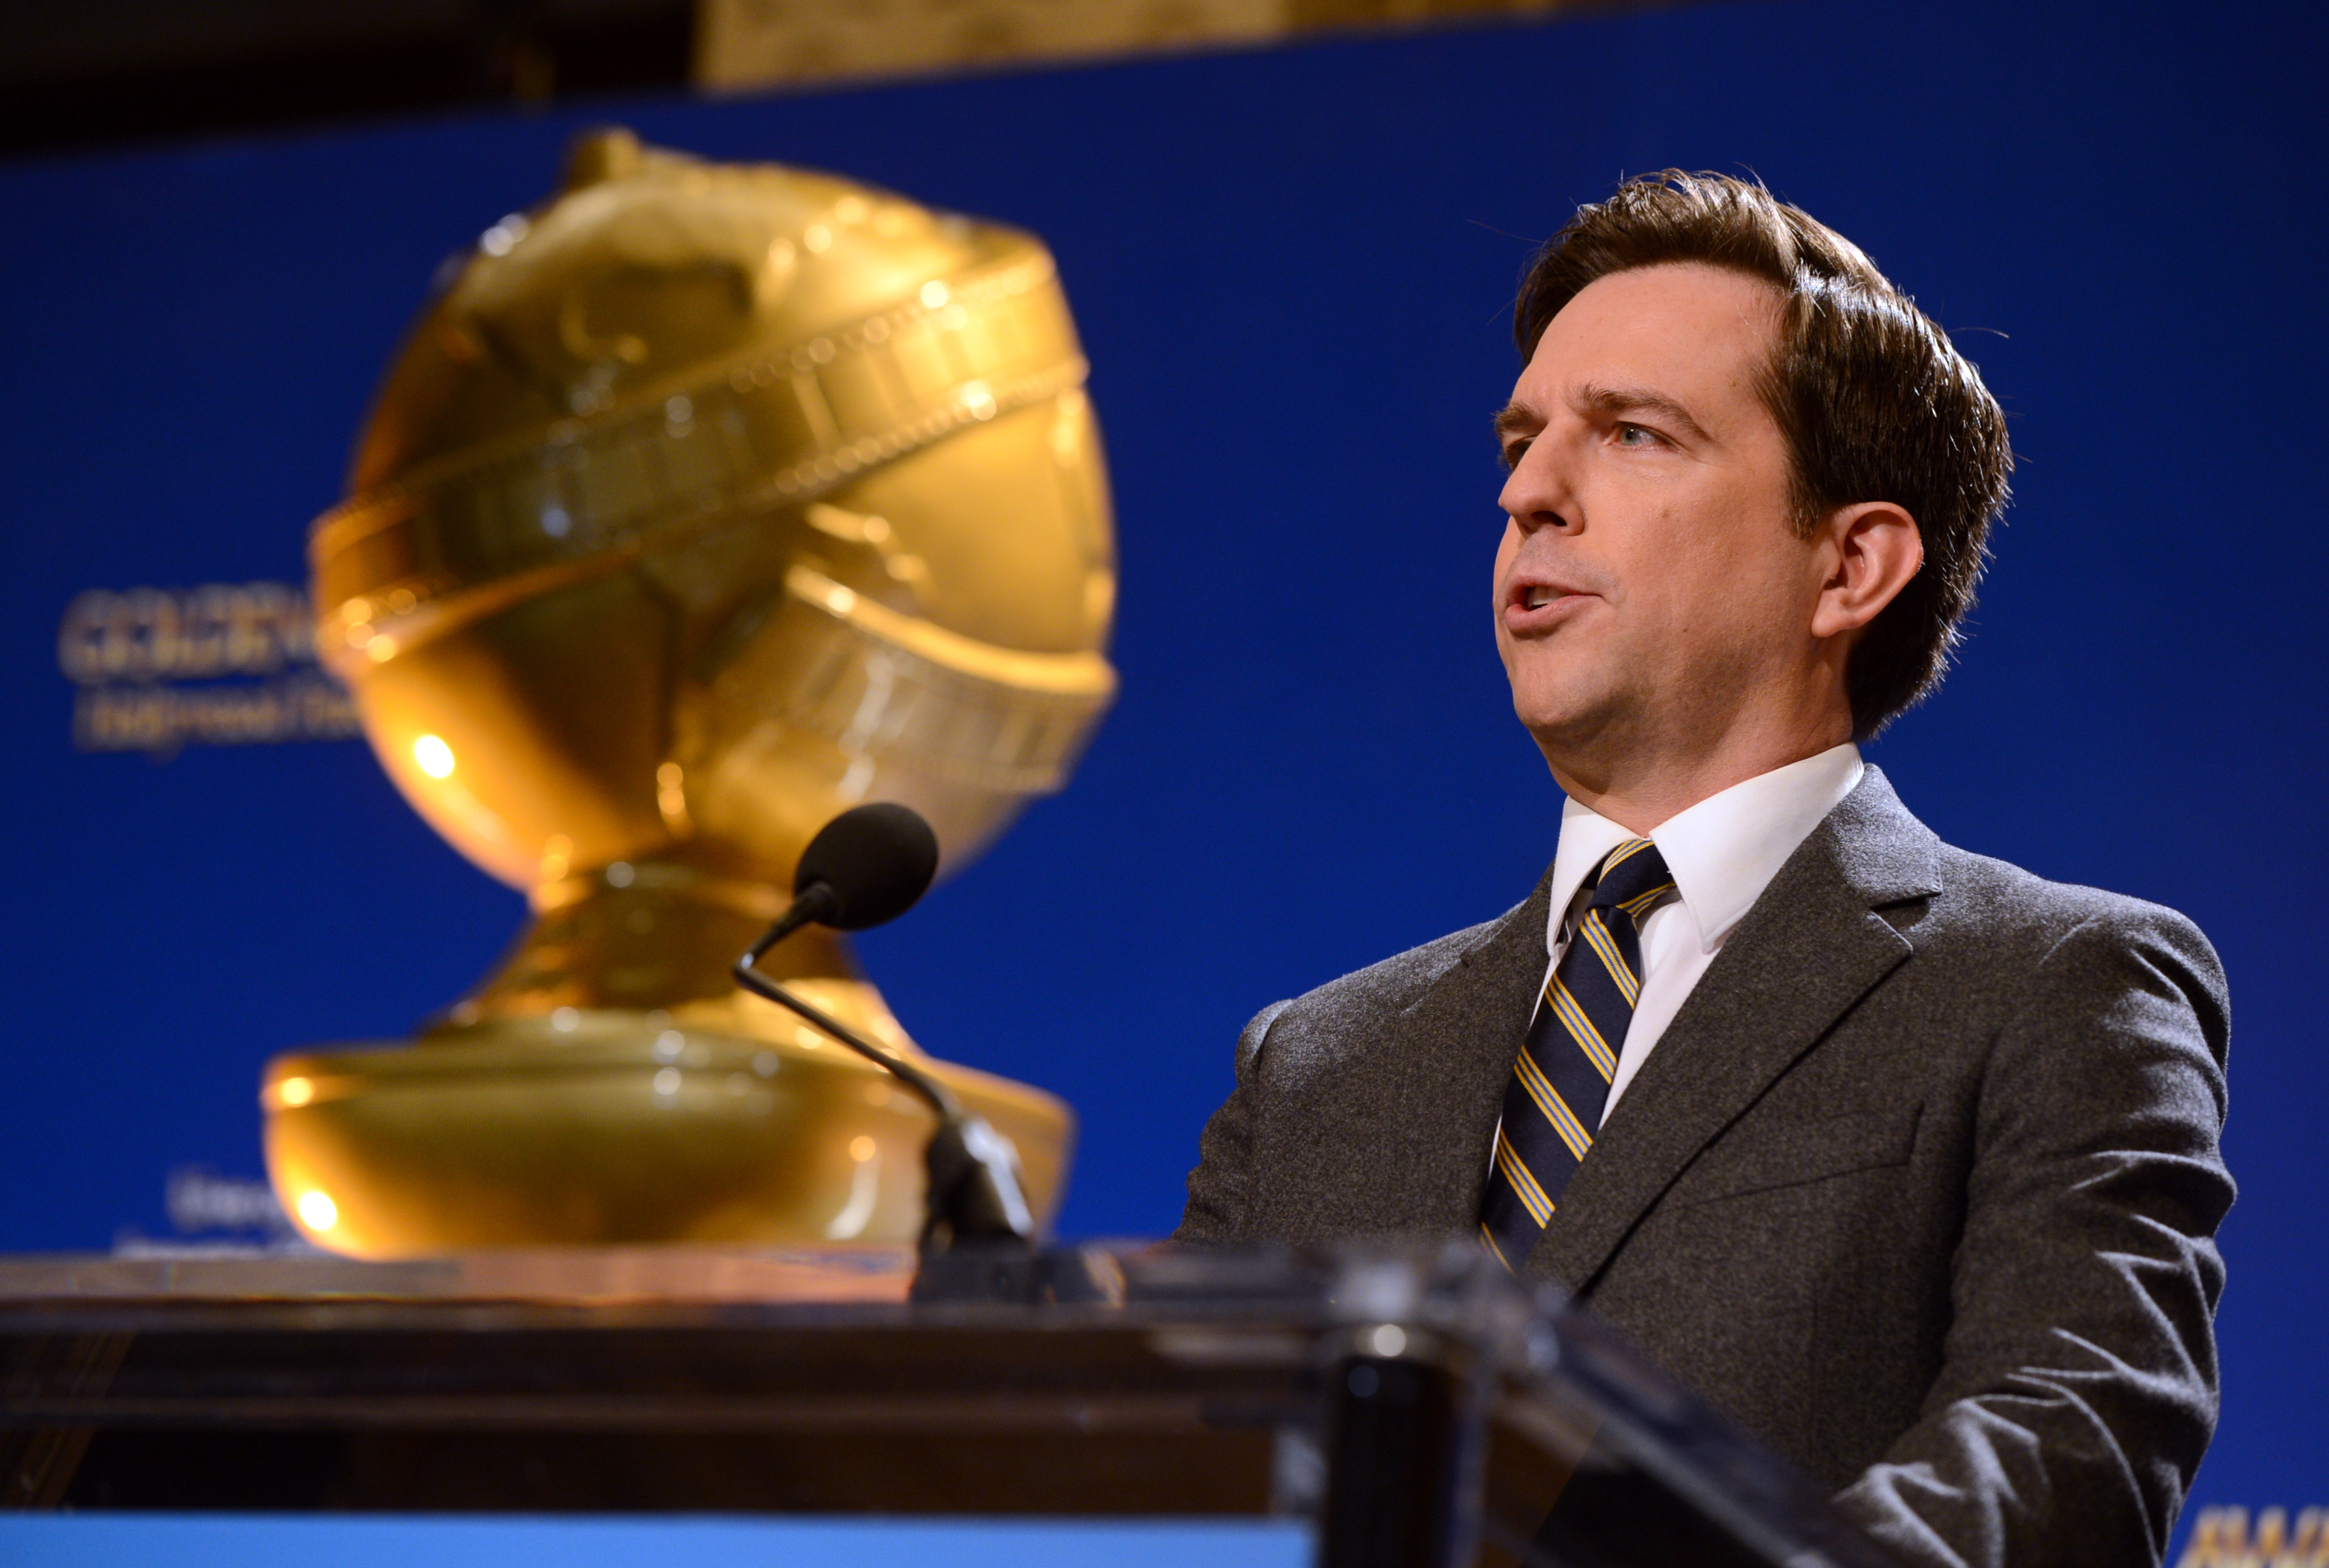 Ed Helms attended the Golden Globe Awards Nominations in LA.